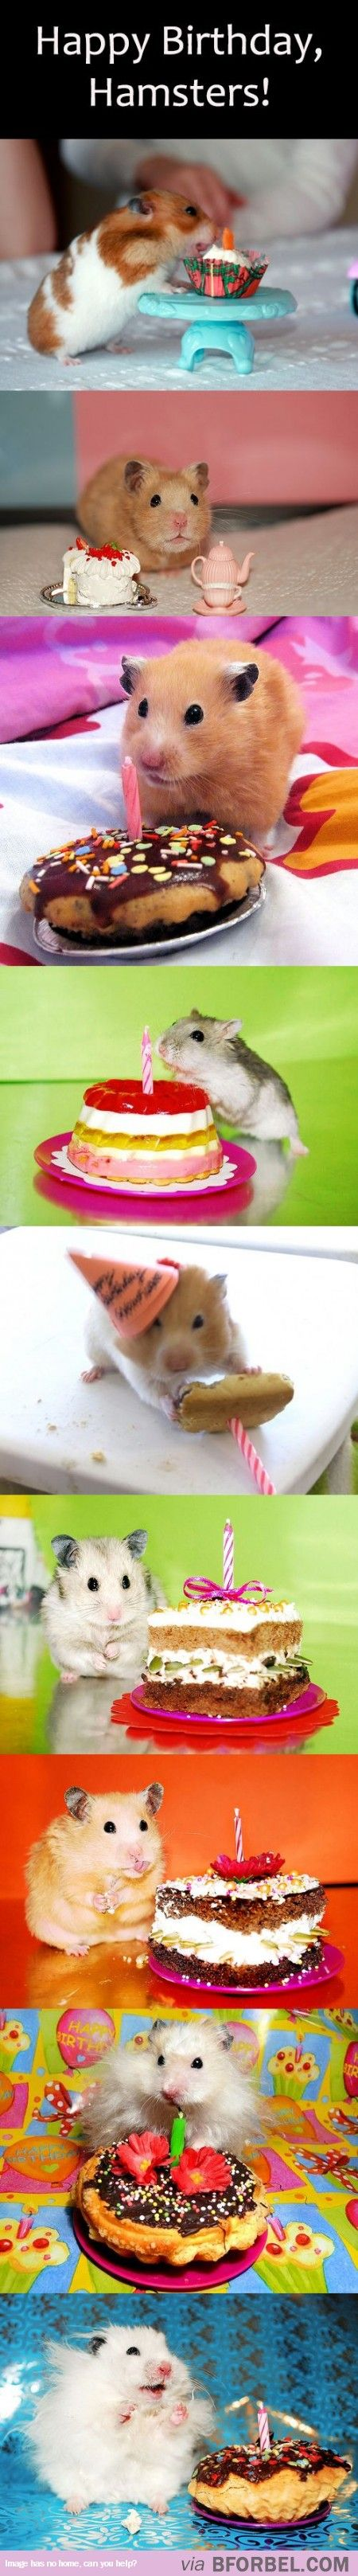 9 Hamsters Celebrating Their Birthdays…